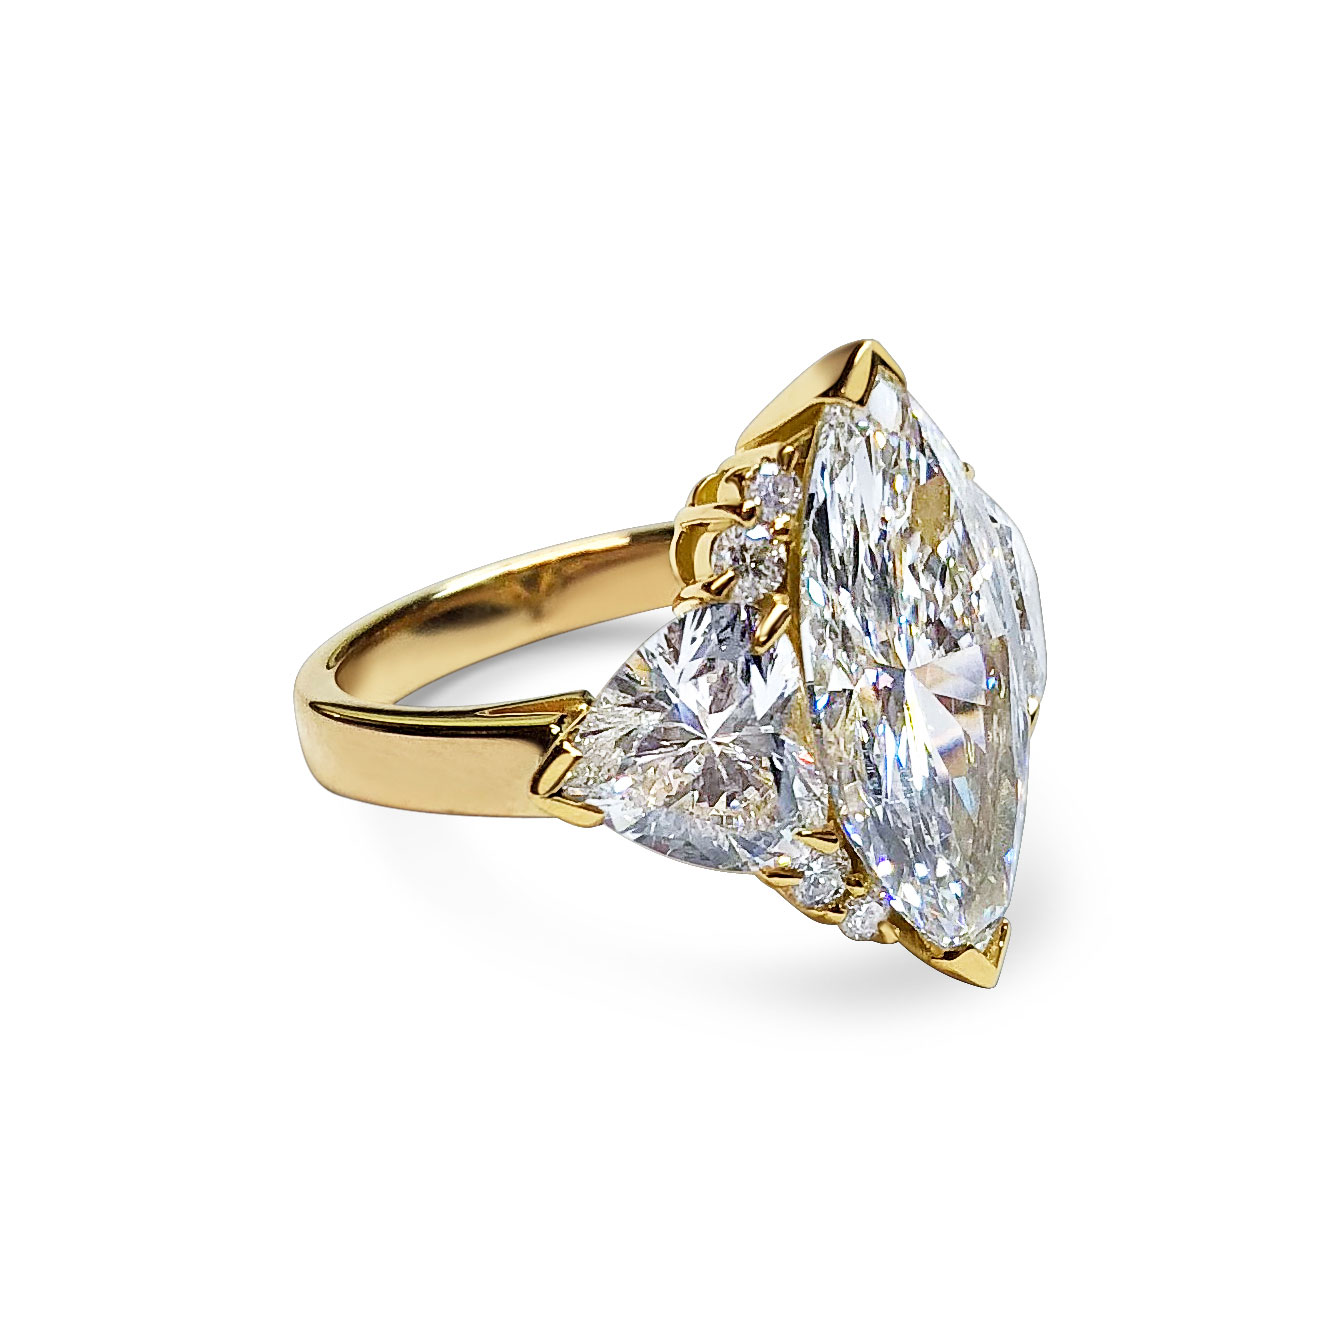 Bespoke marquise and heart-shaped diamond ring, mounted in 18ct yellow and rose gold side view